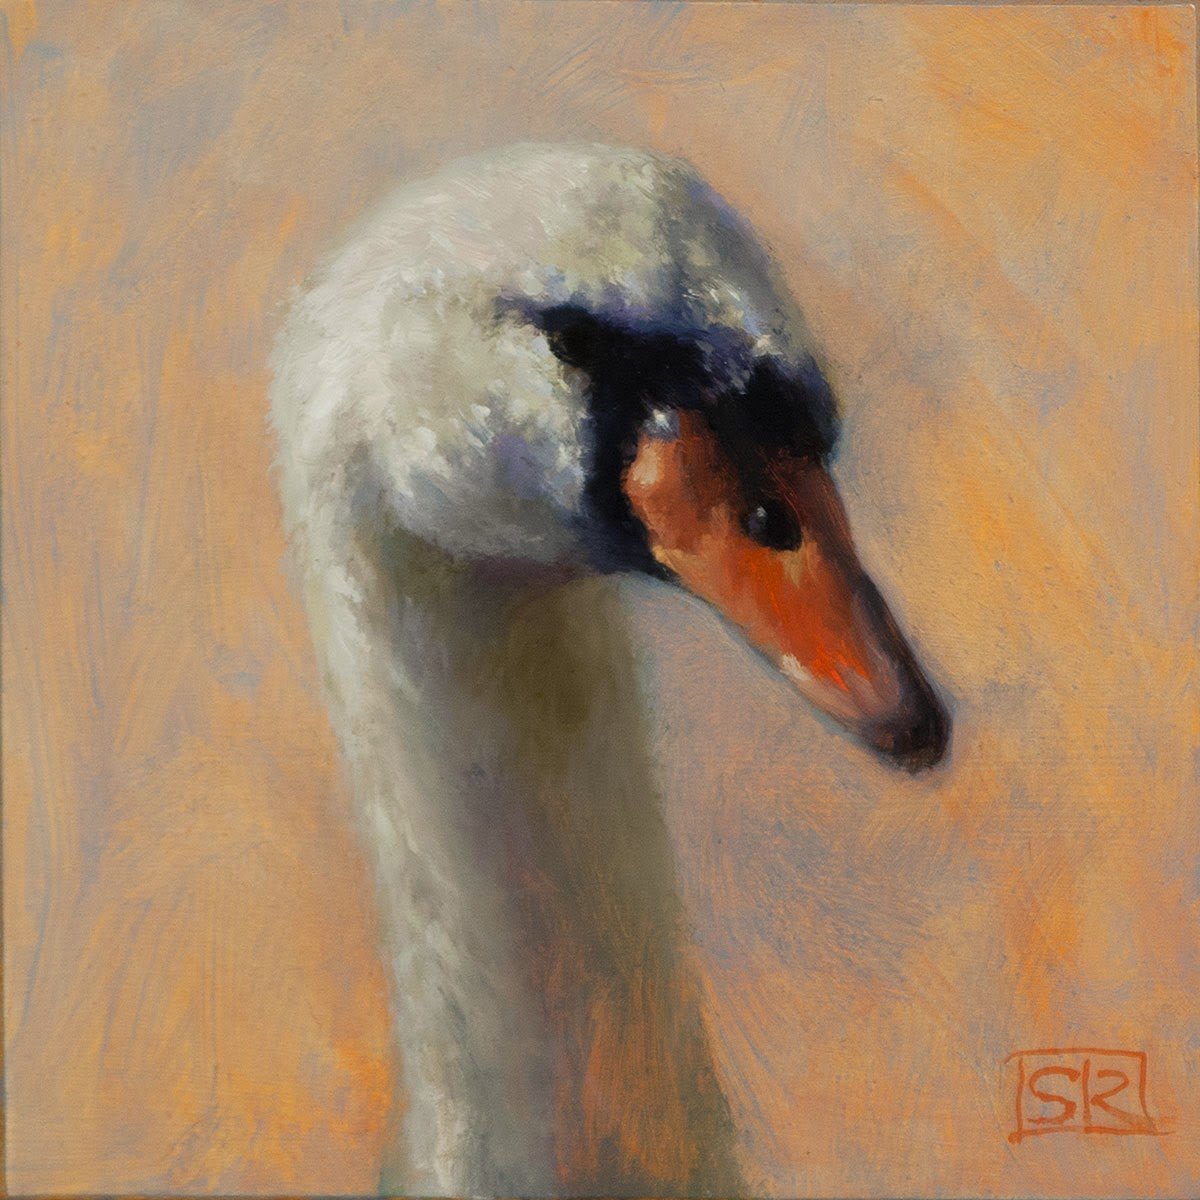 Swan portrait, oil paint, ornoithological art, Shannon Reynolds